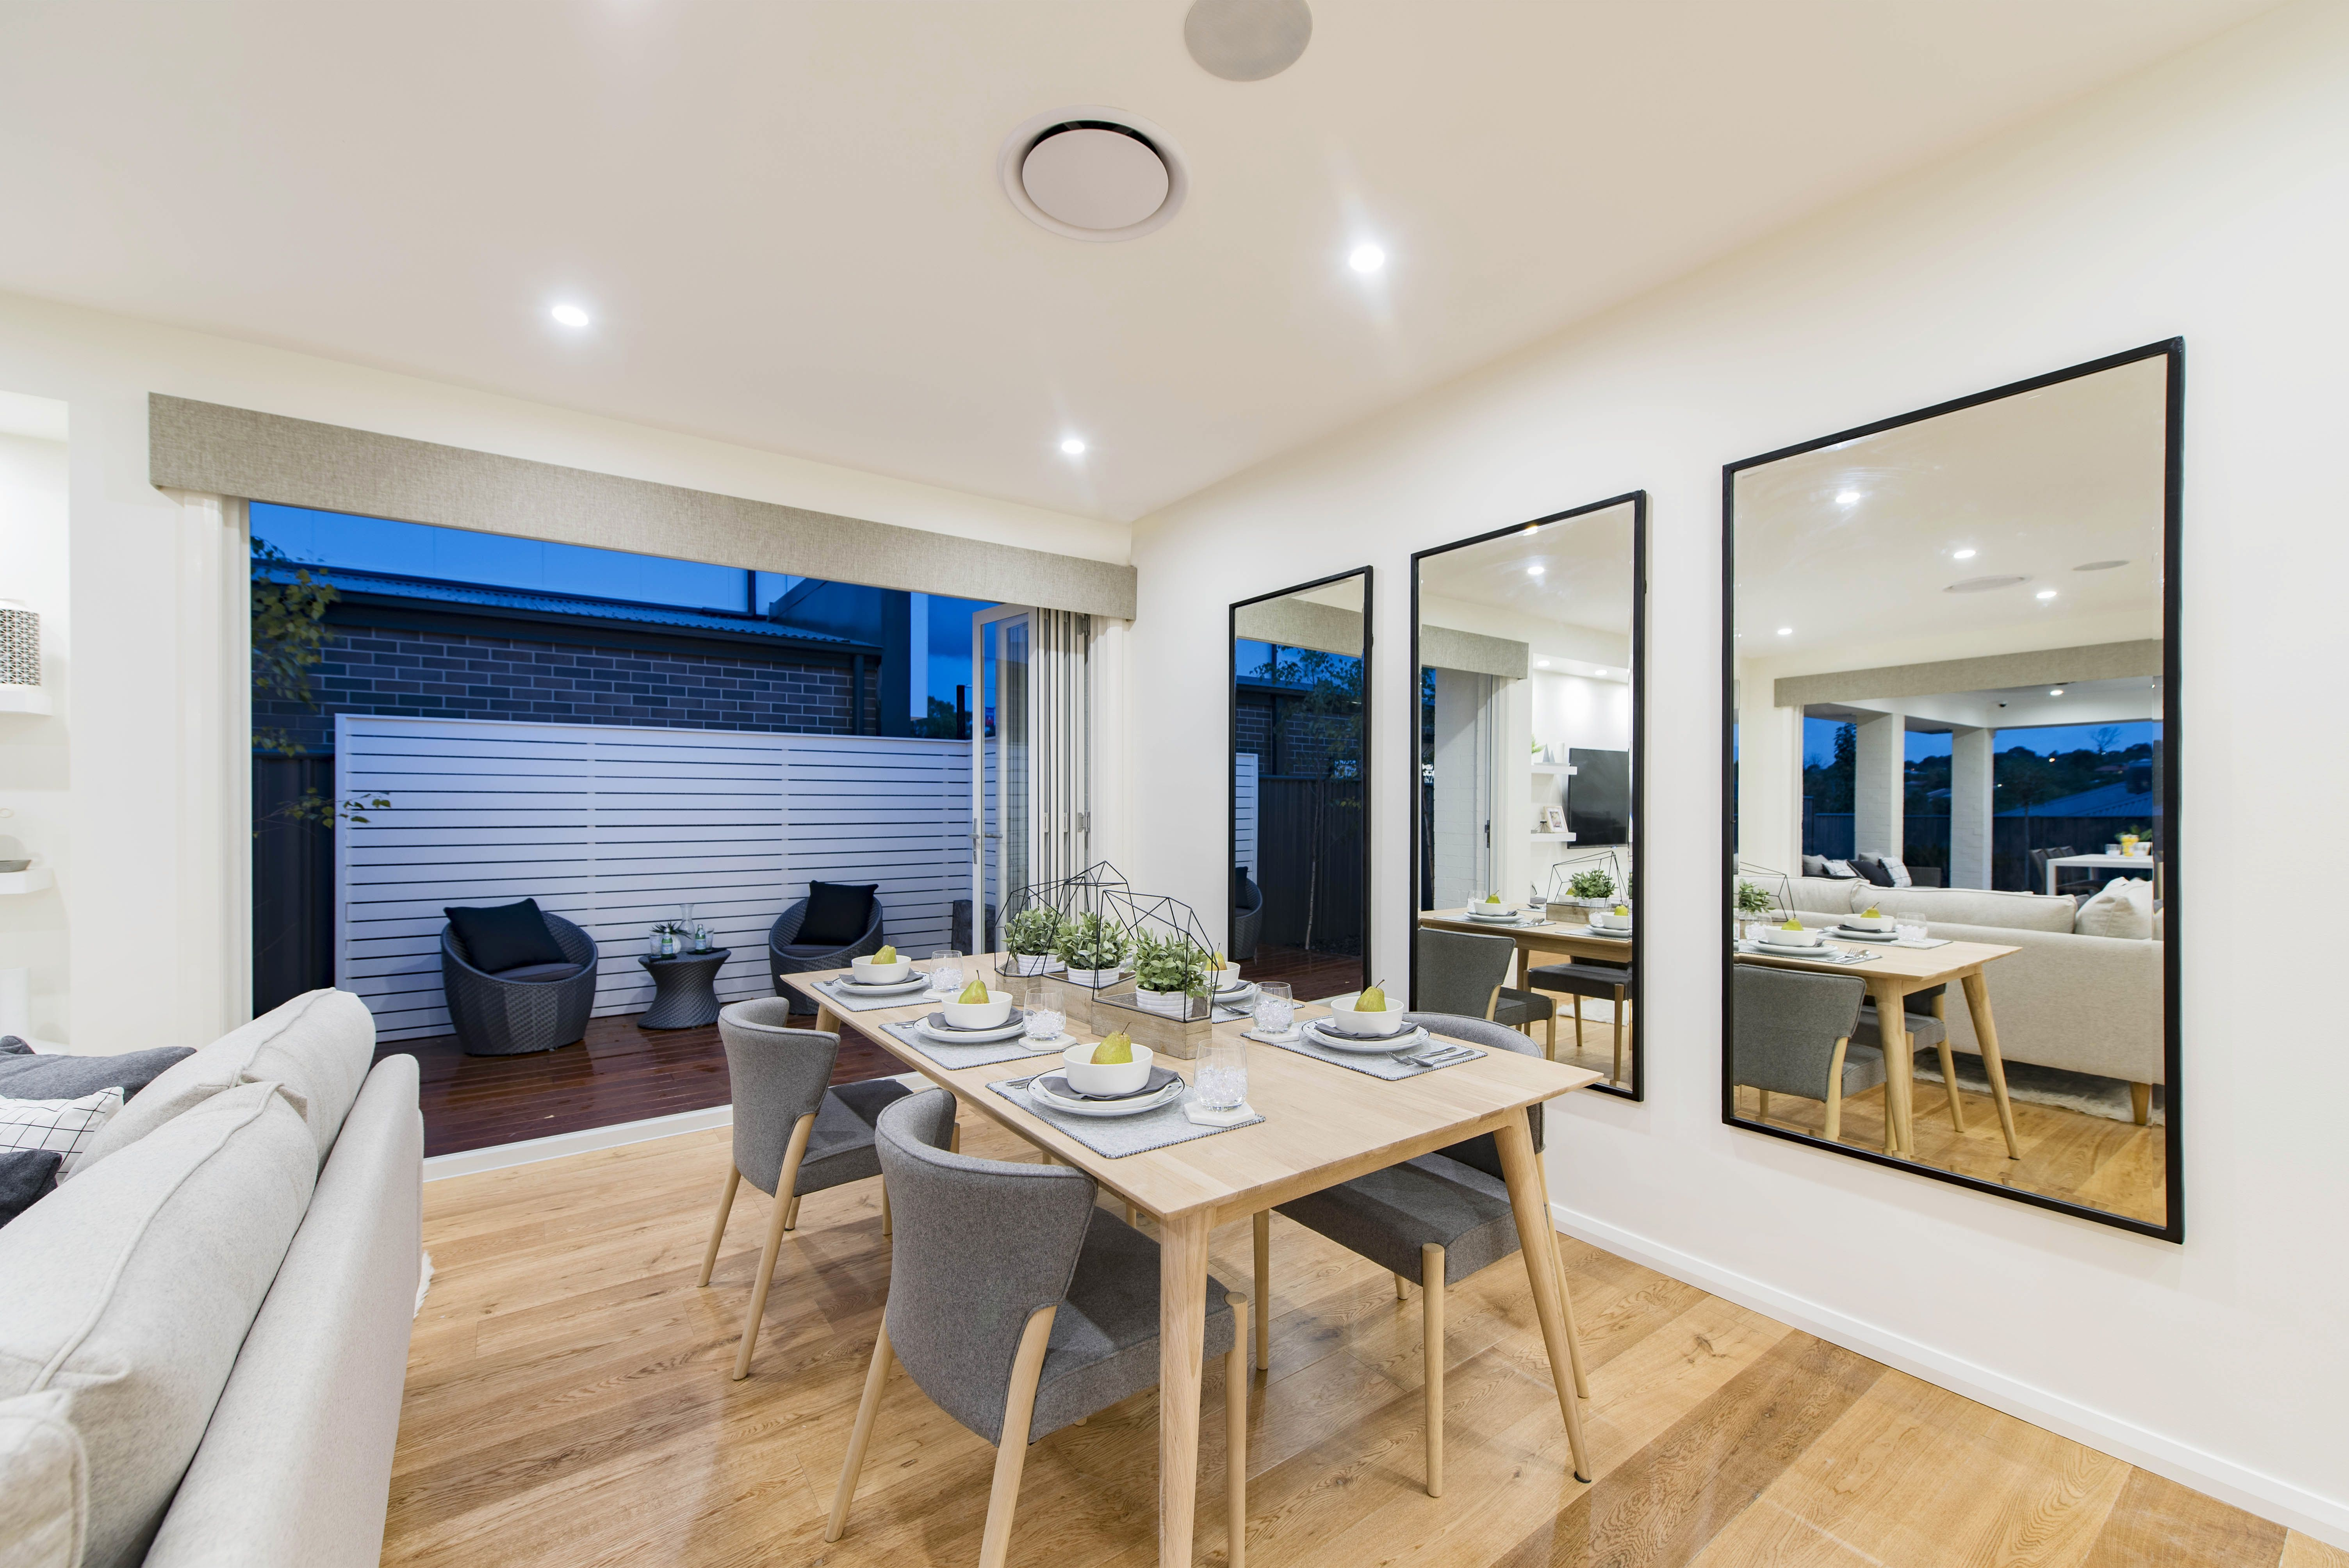 The beautiful #dining space in the Stoneleigh on display in Moncrieff, featuring a #Scandinavian #interior #style. For details and more photos see http://mcdonaldjoneshomes.com.au/display-home-locations/moncrieff. #scandi #mirrors #diningtable #alfresco #indooroutdoor #living #chairs #furniture #interiordesign #interiorstyle #décor #decorate #home #newhome